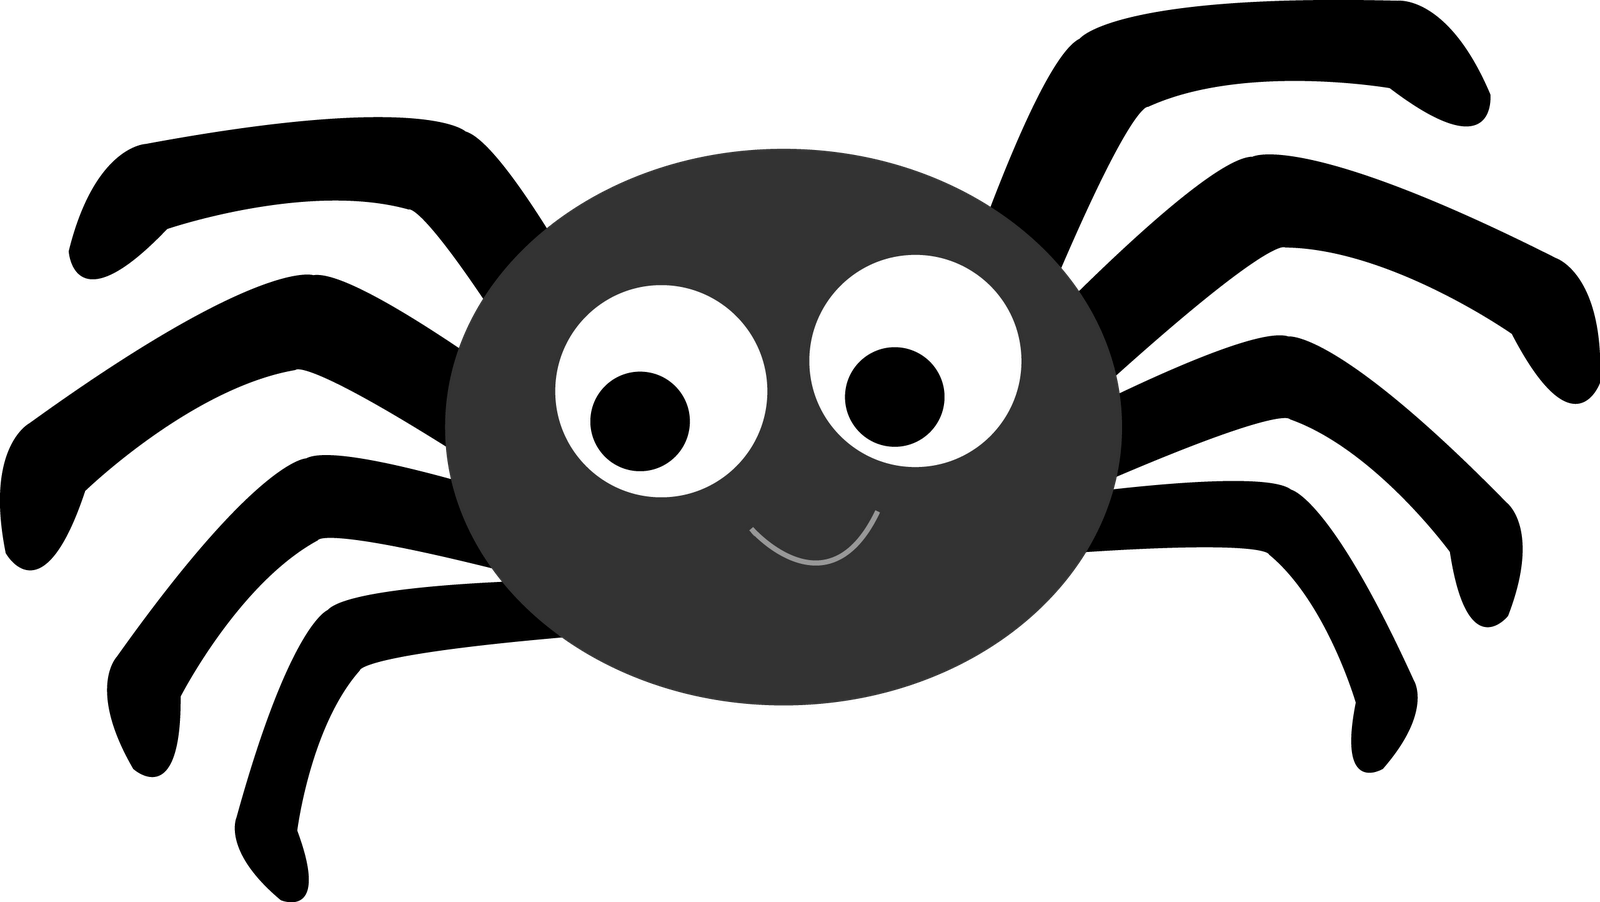 Halloween spider clipart black and white 7 » Clipart Portal.